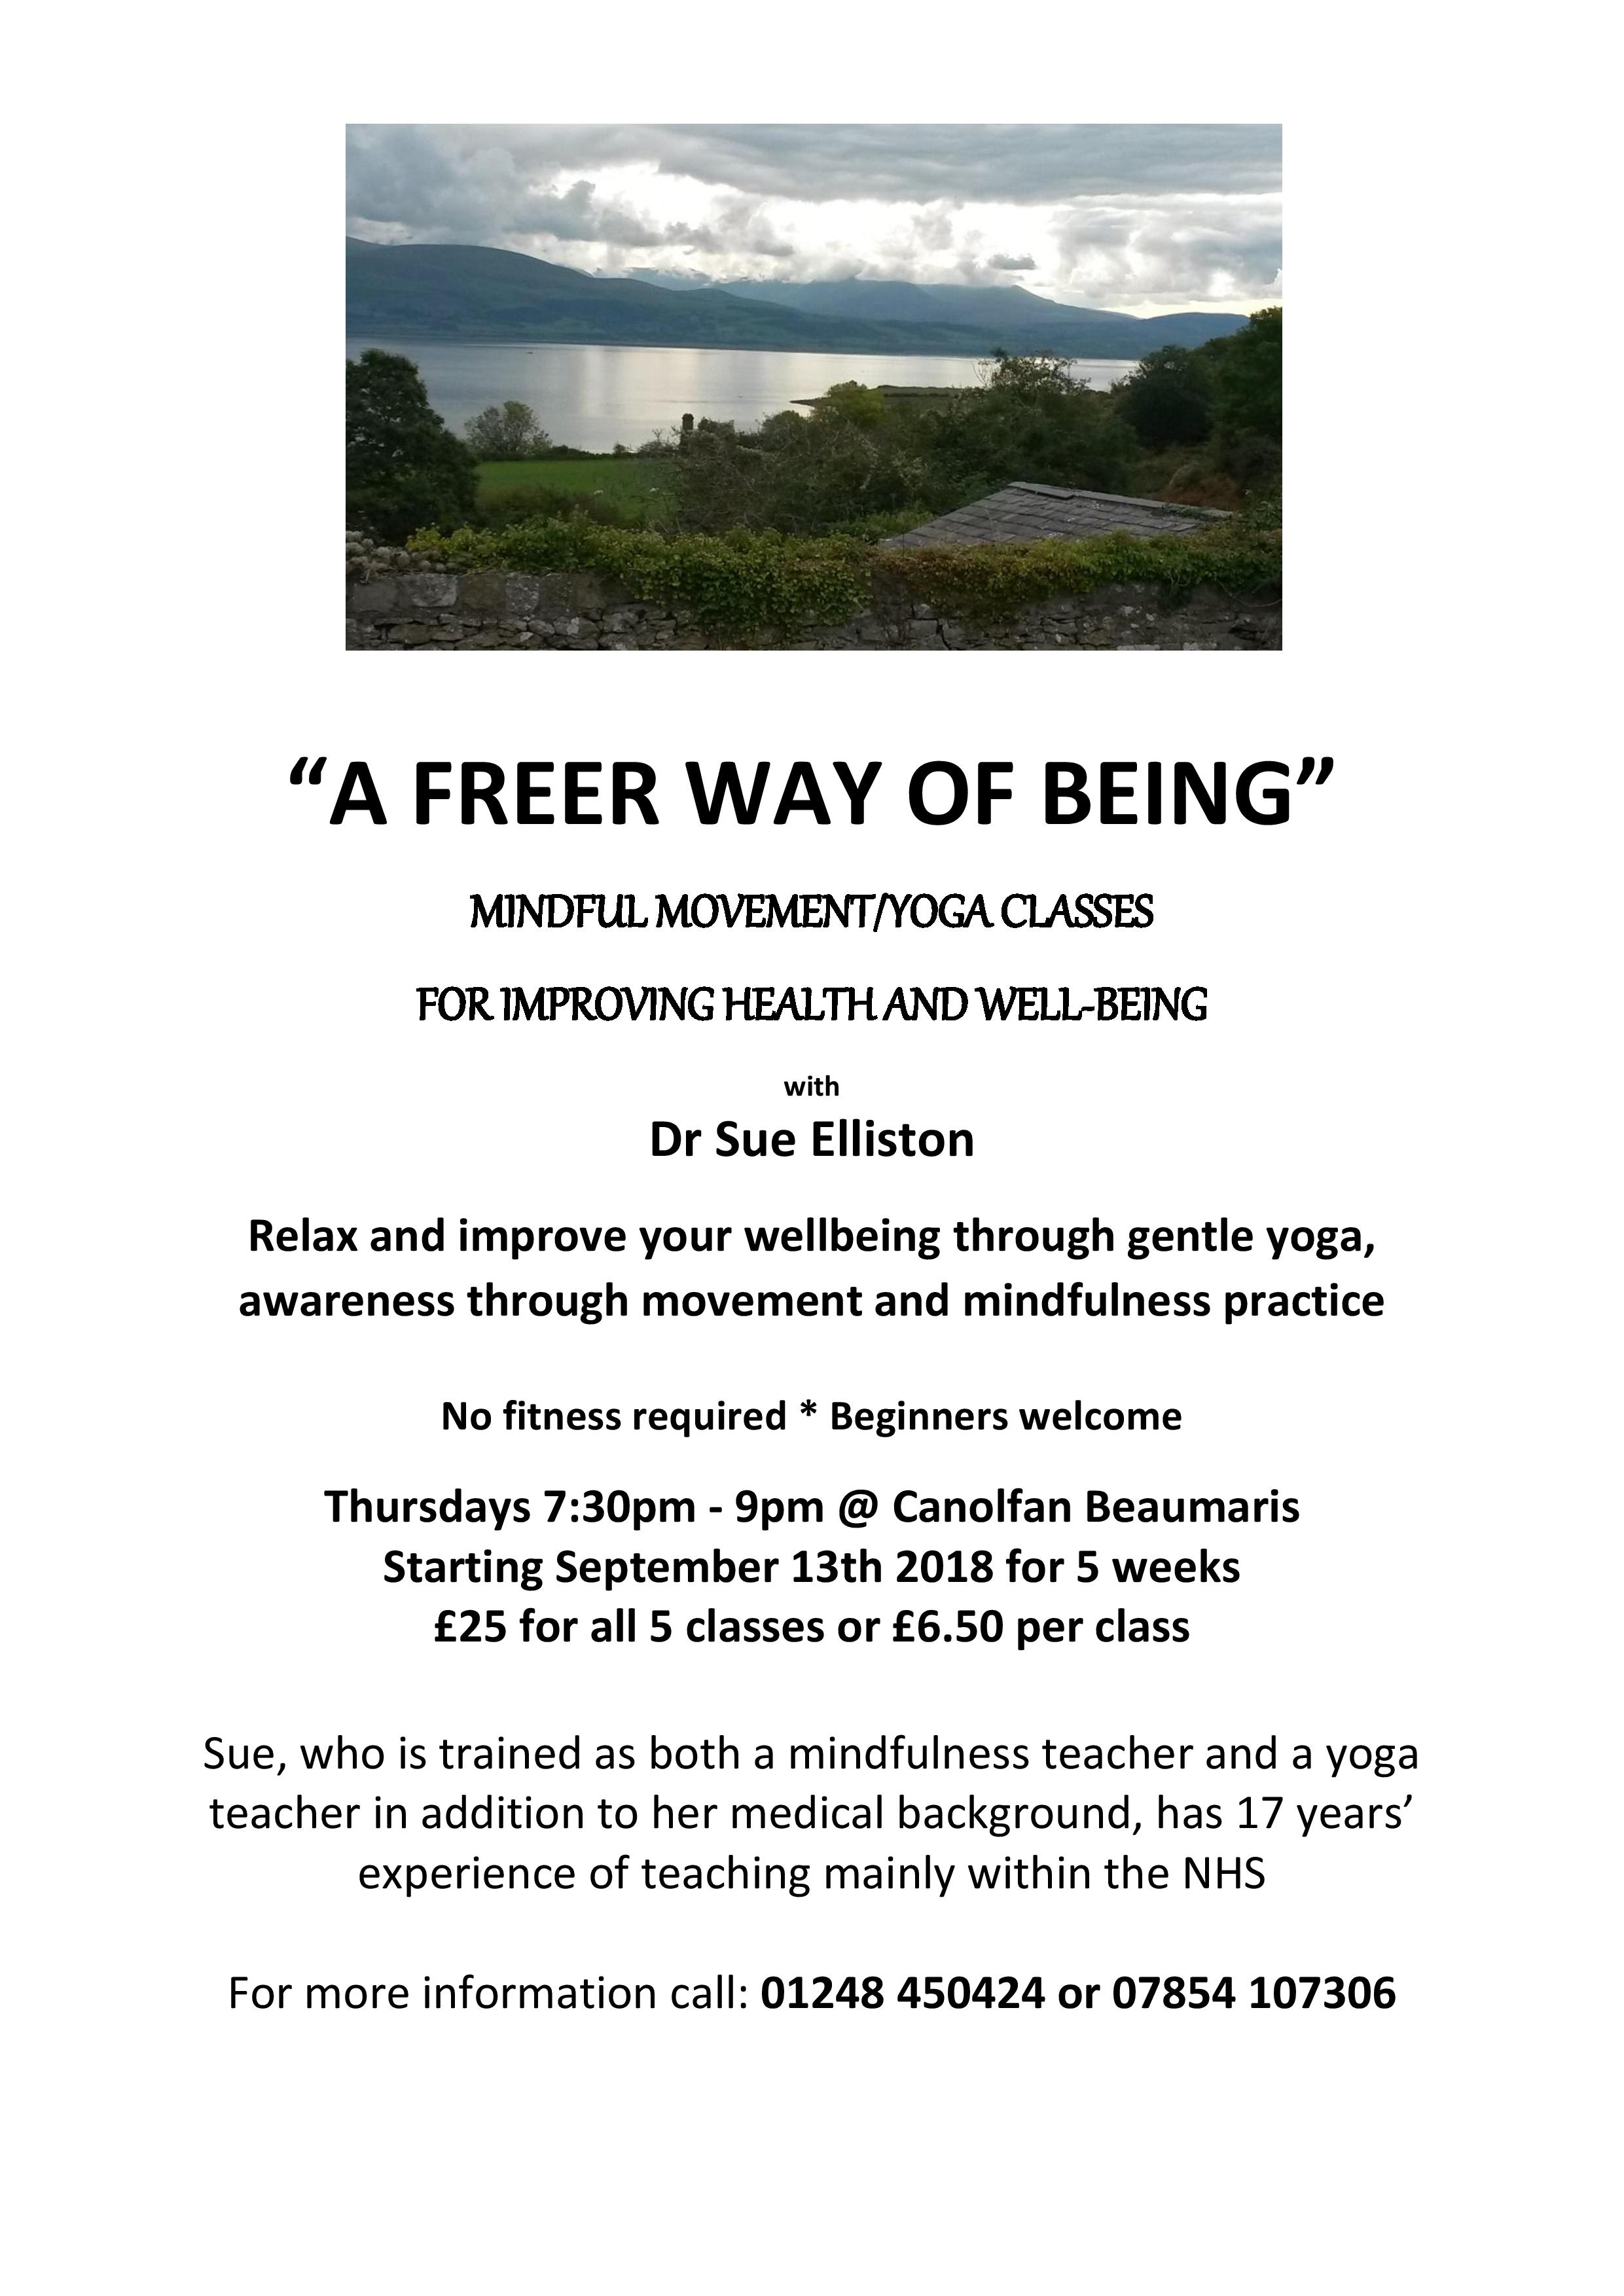 """A FREER WAY OF BEING"" – Mindful Movement/Yoga Classes For Improved Health And Well-being, With Dr Sue Elliston"